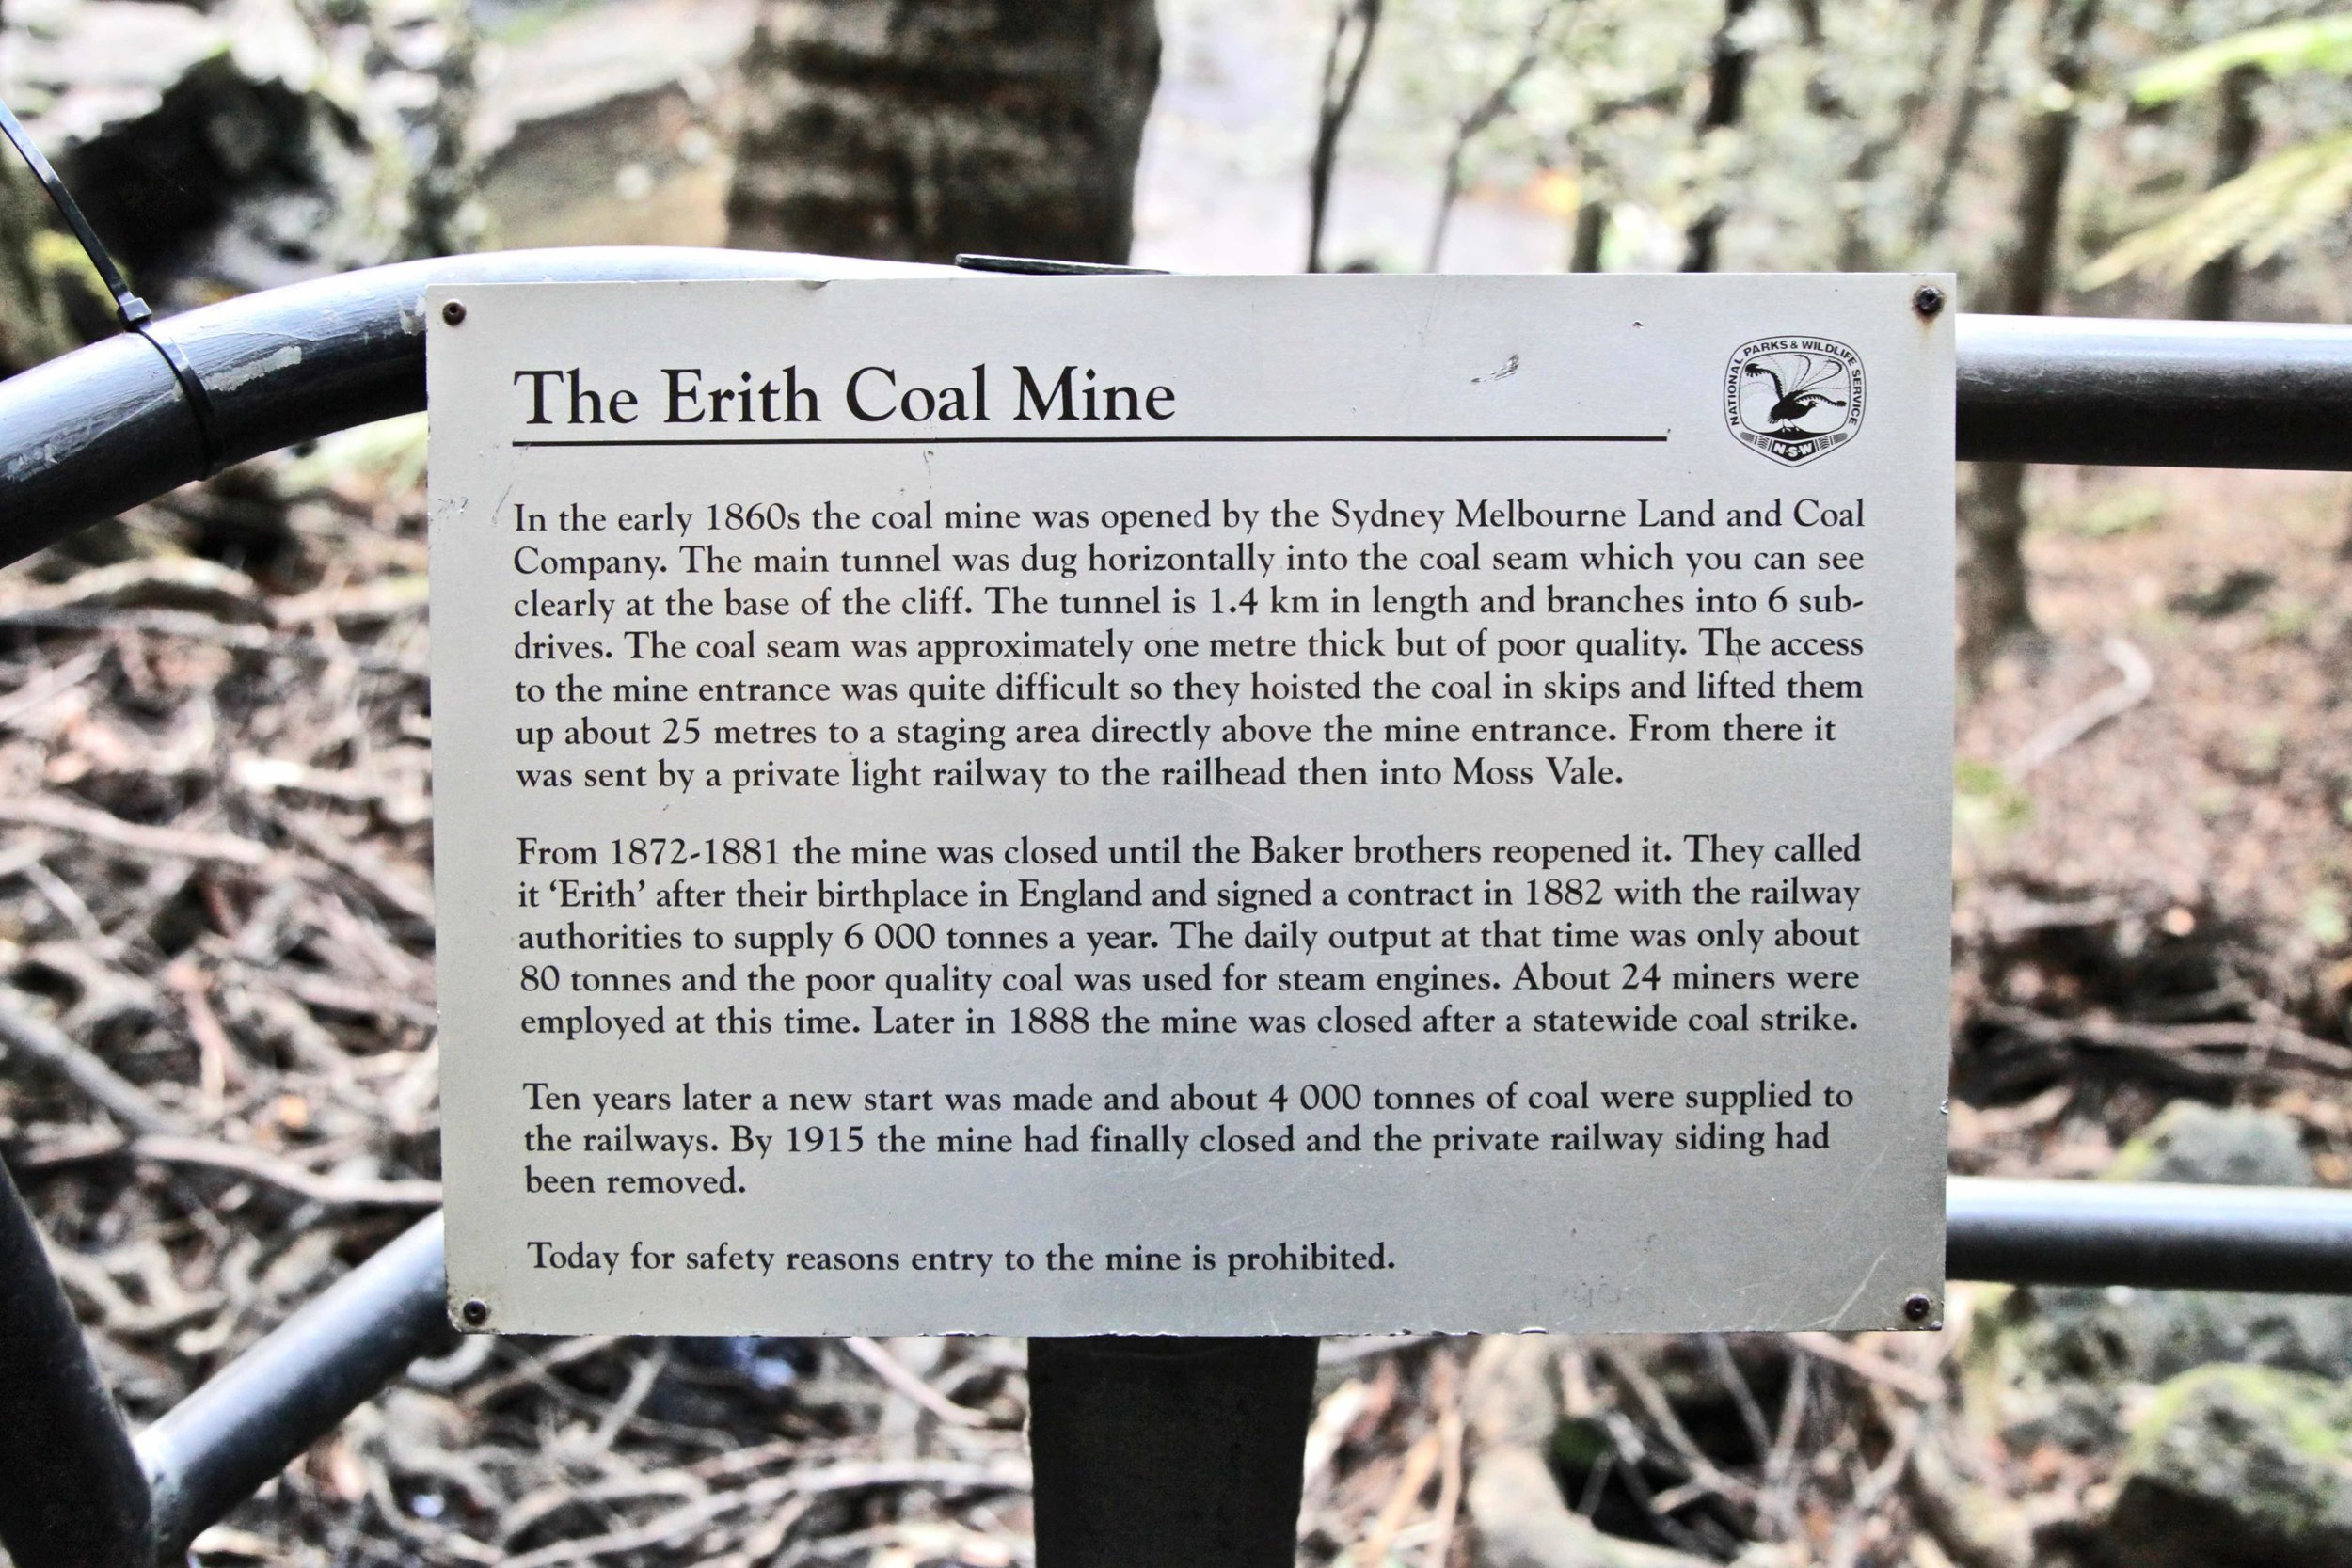 The Erith Coal mine operated on and off from the 1860s until 1915.